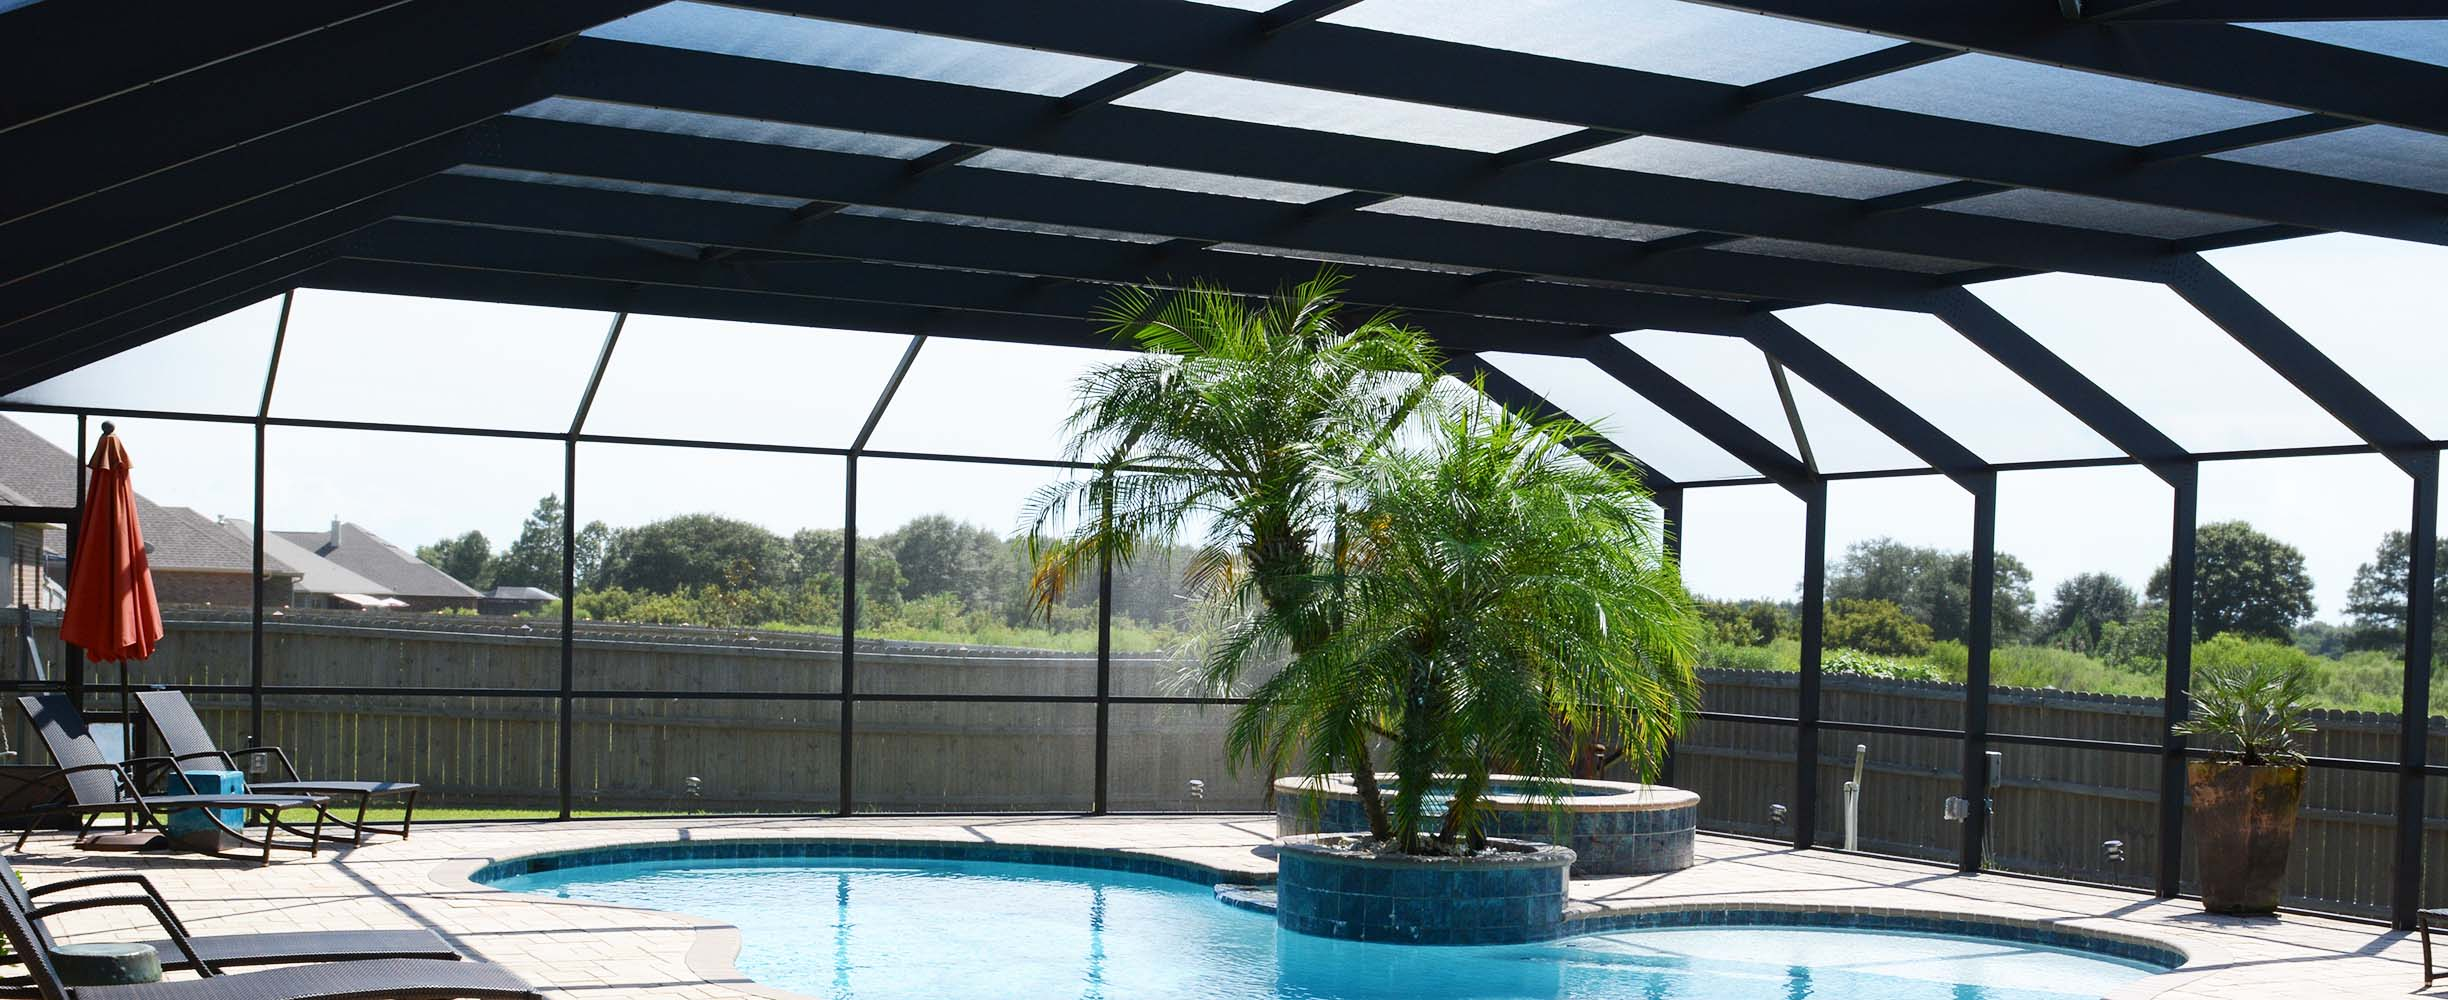 Custom designed swimming pool enclosure in Foley, Alabama